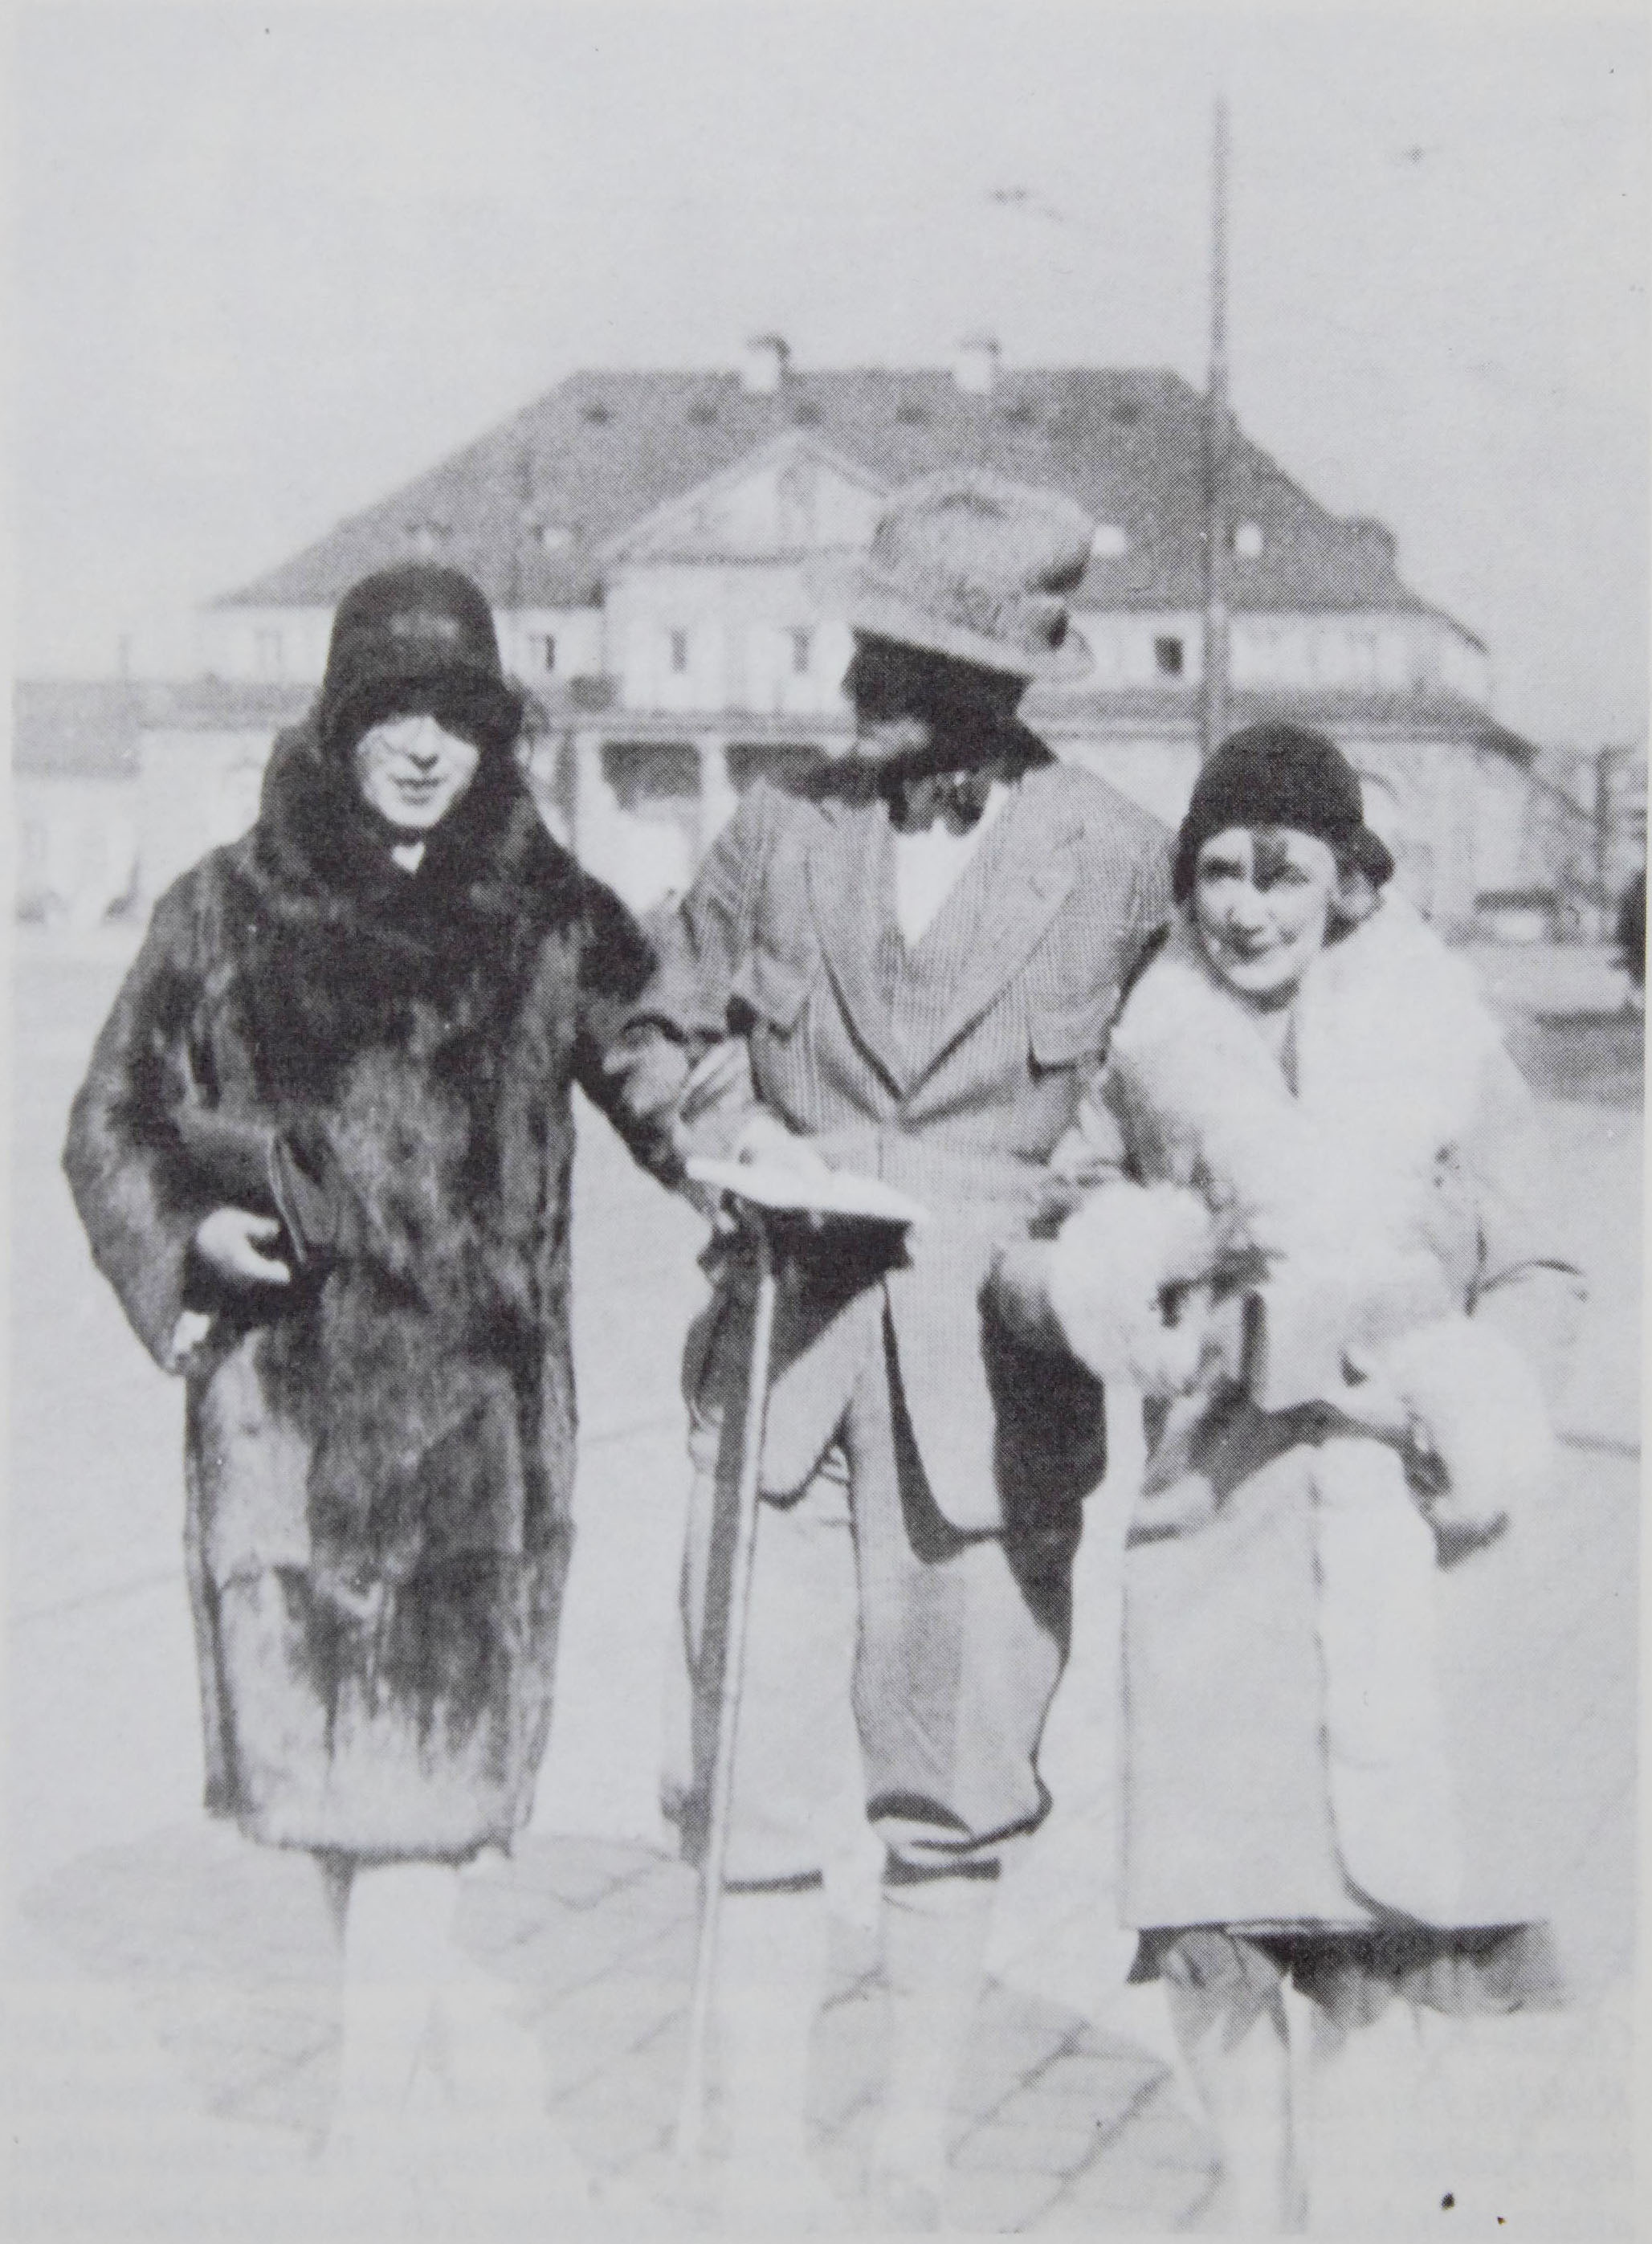 The photo, which takes up the whole page along with the                      caption, is credited to The Royal Library, The Collection of Prints and                      Photographs. It captures Lili Elbe, Poul Knudsen and Gerda Wegener outside,                      most likely in Berlin, dressed in coats and hats.